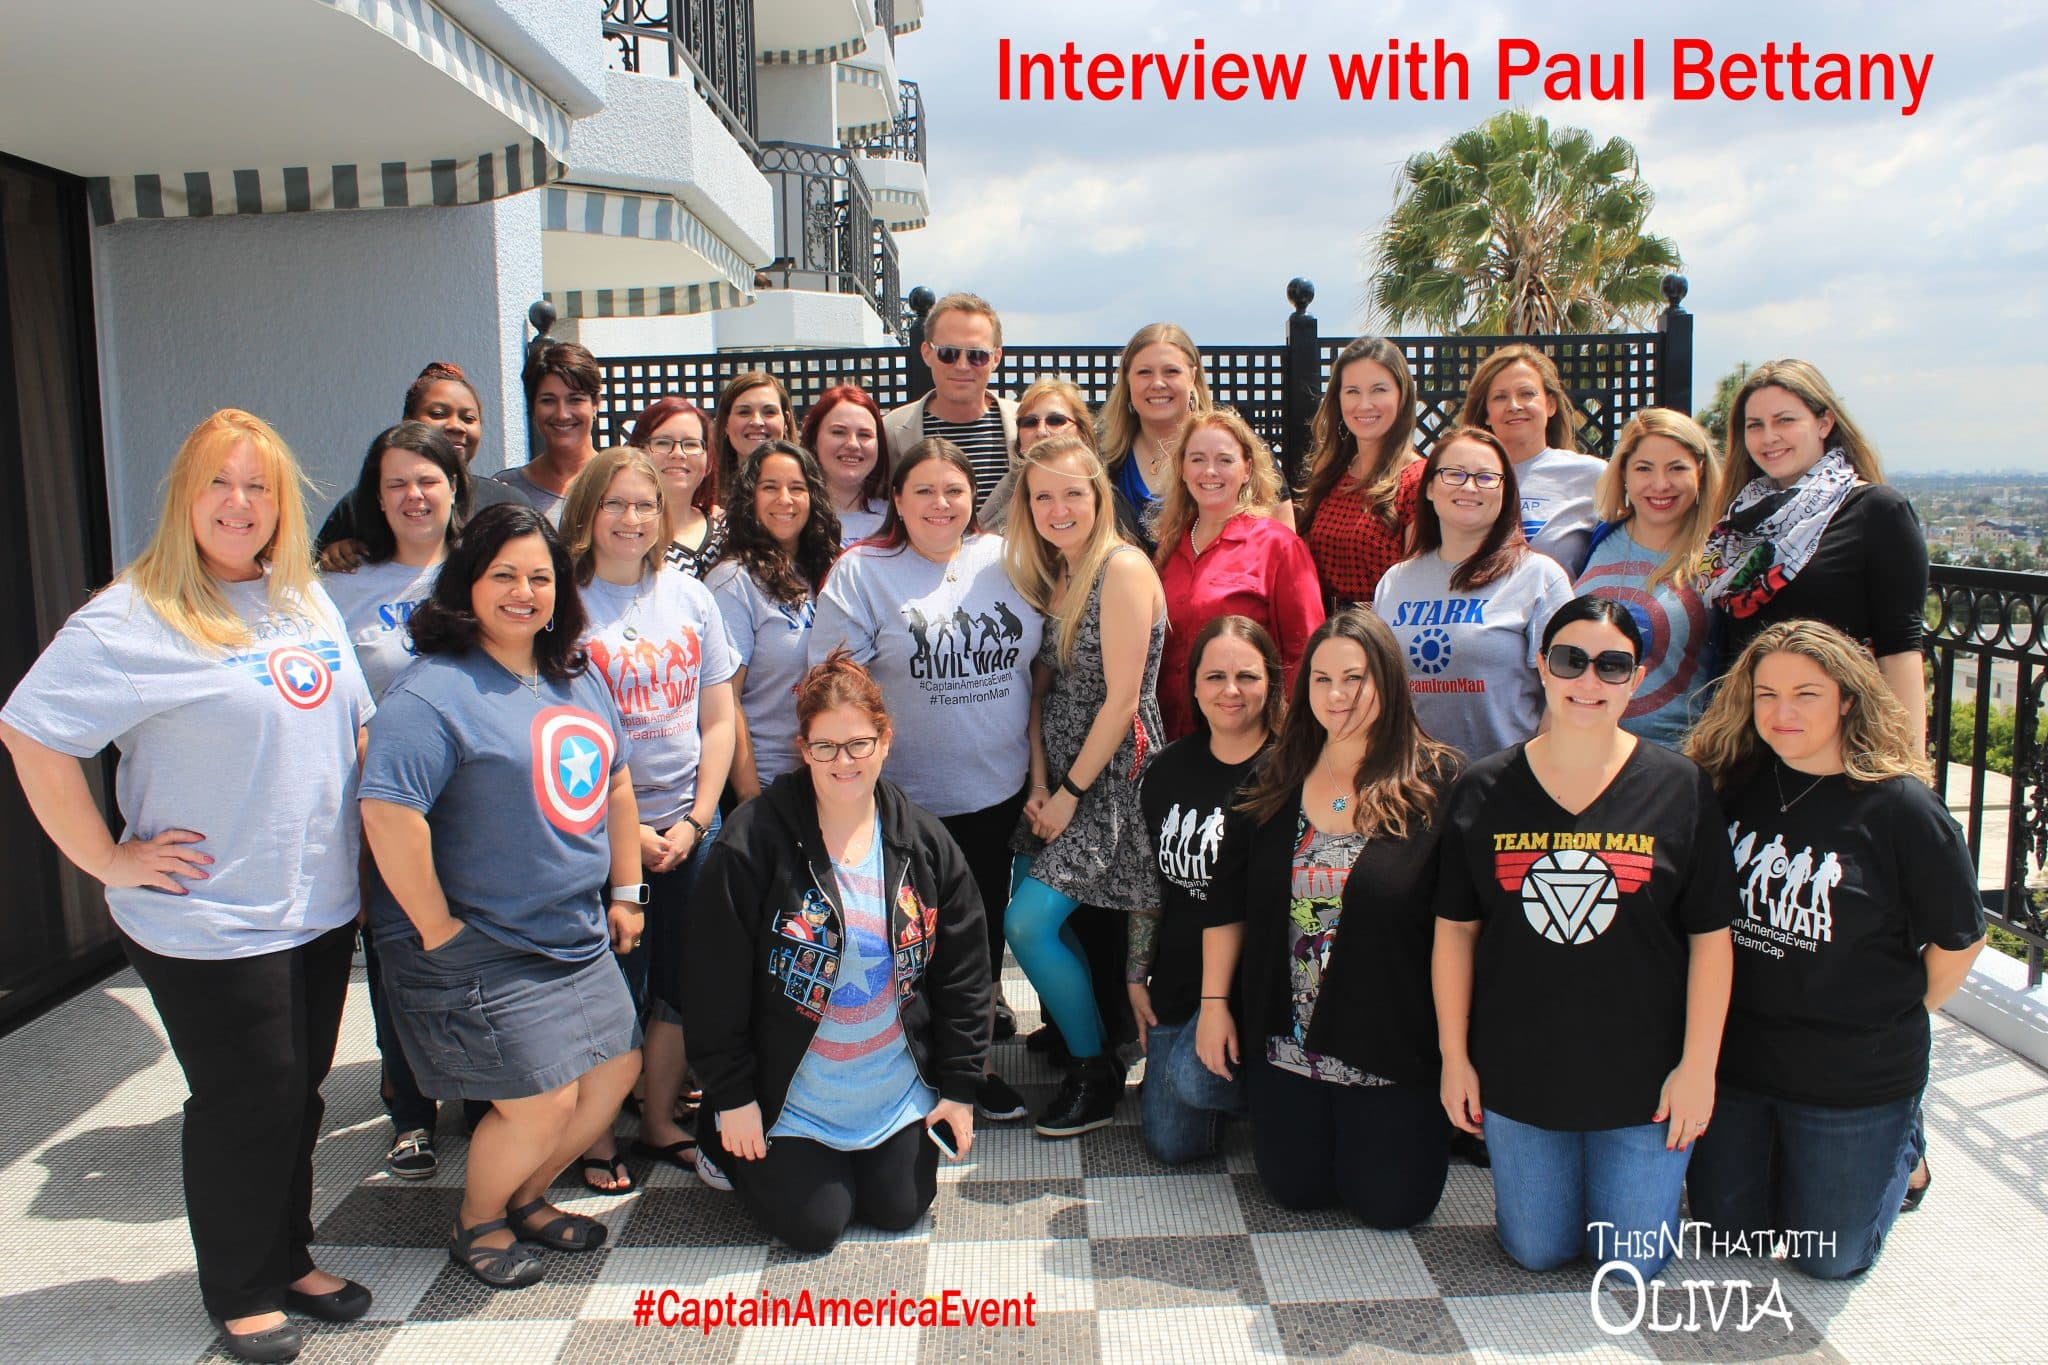 Interview with Paul Bettany